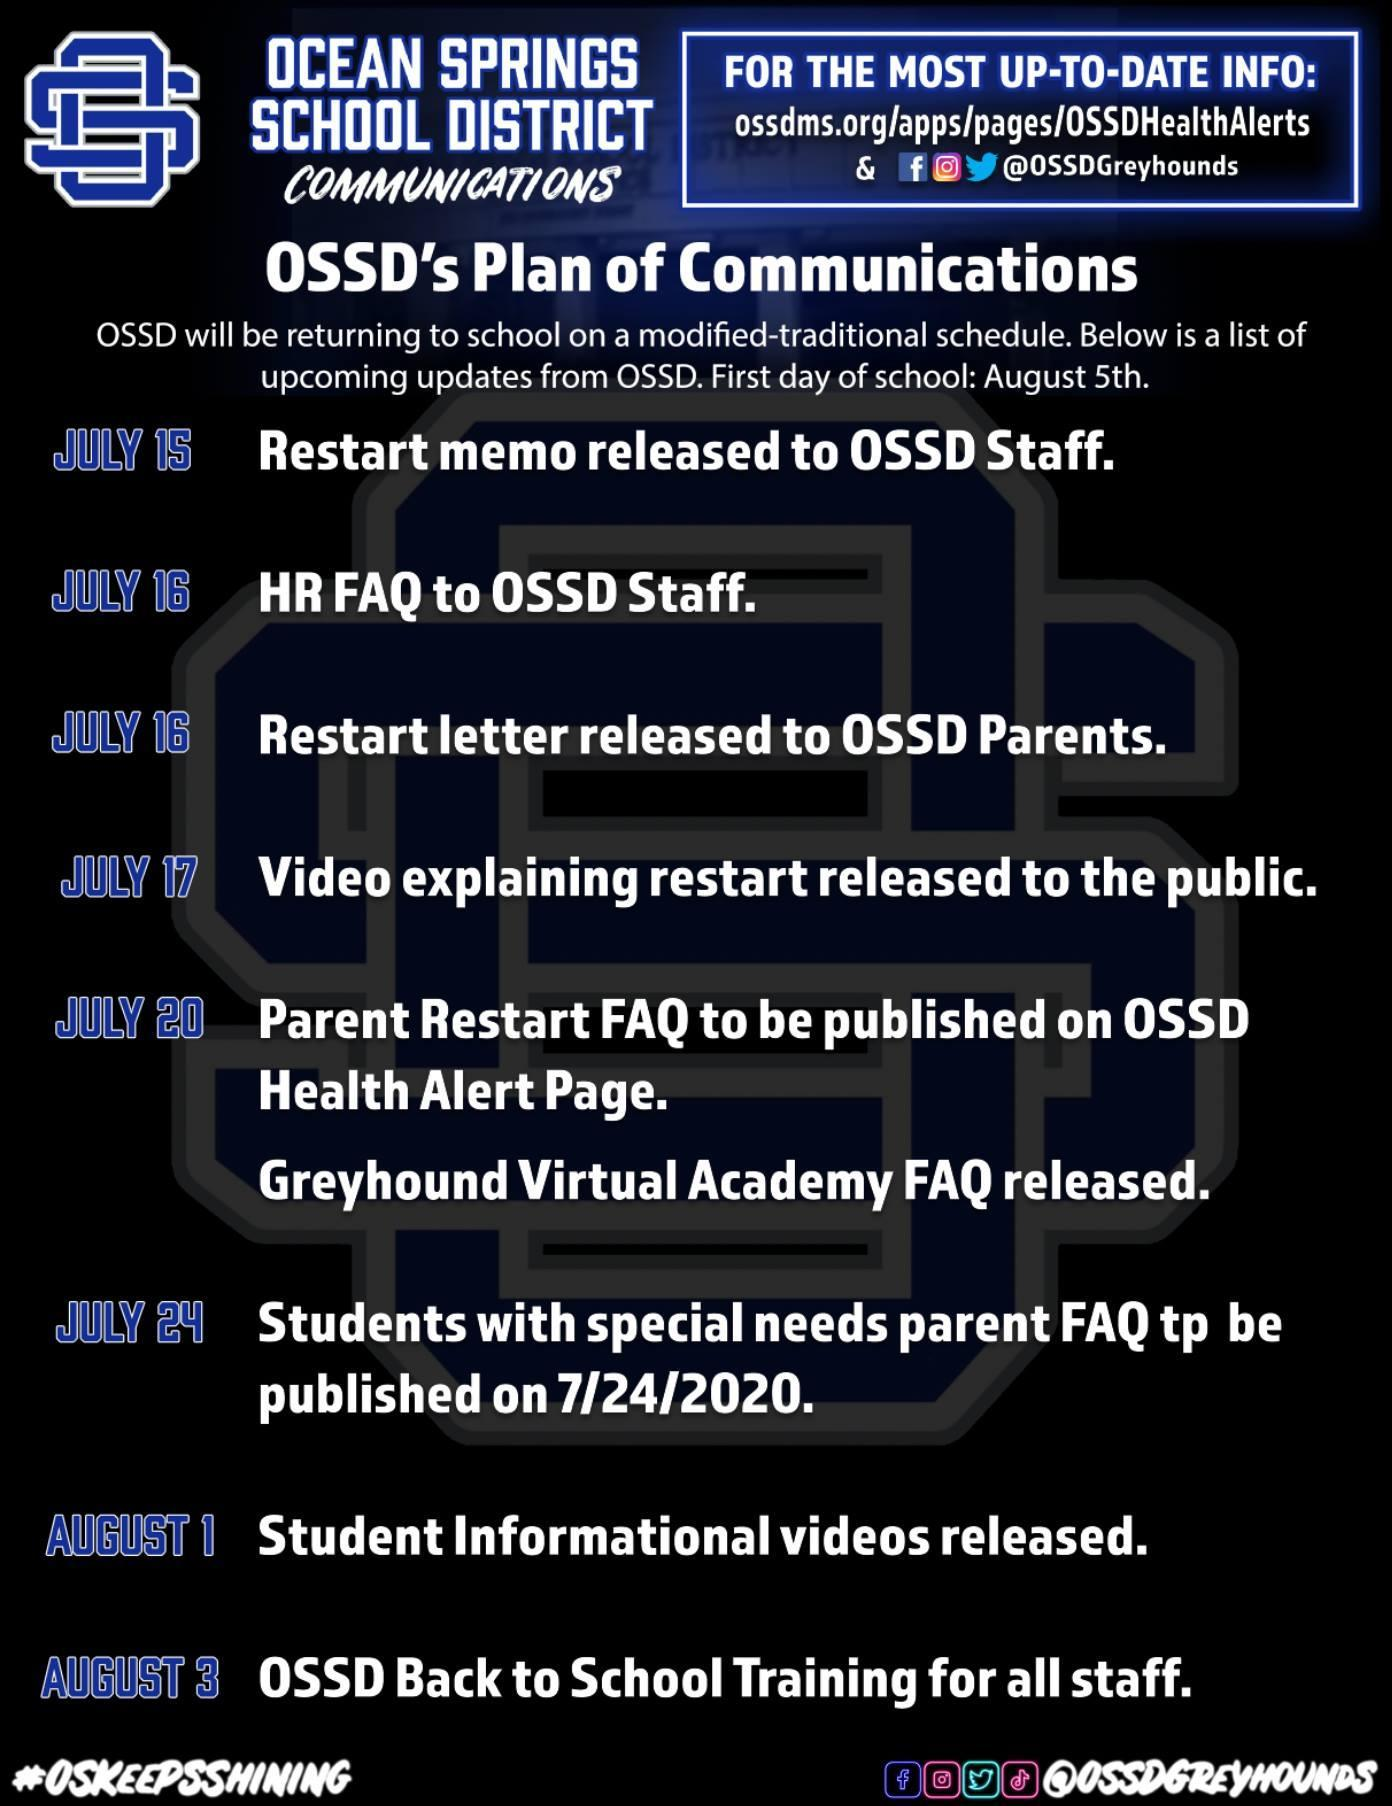 Image listing dates of OSSD Plan of Communications